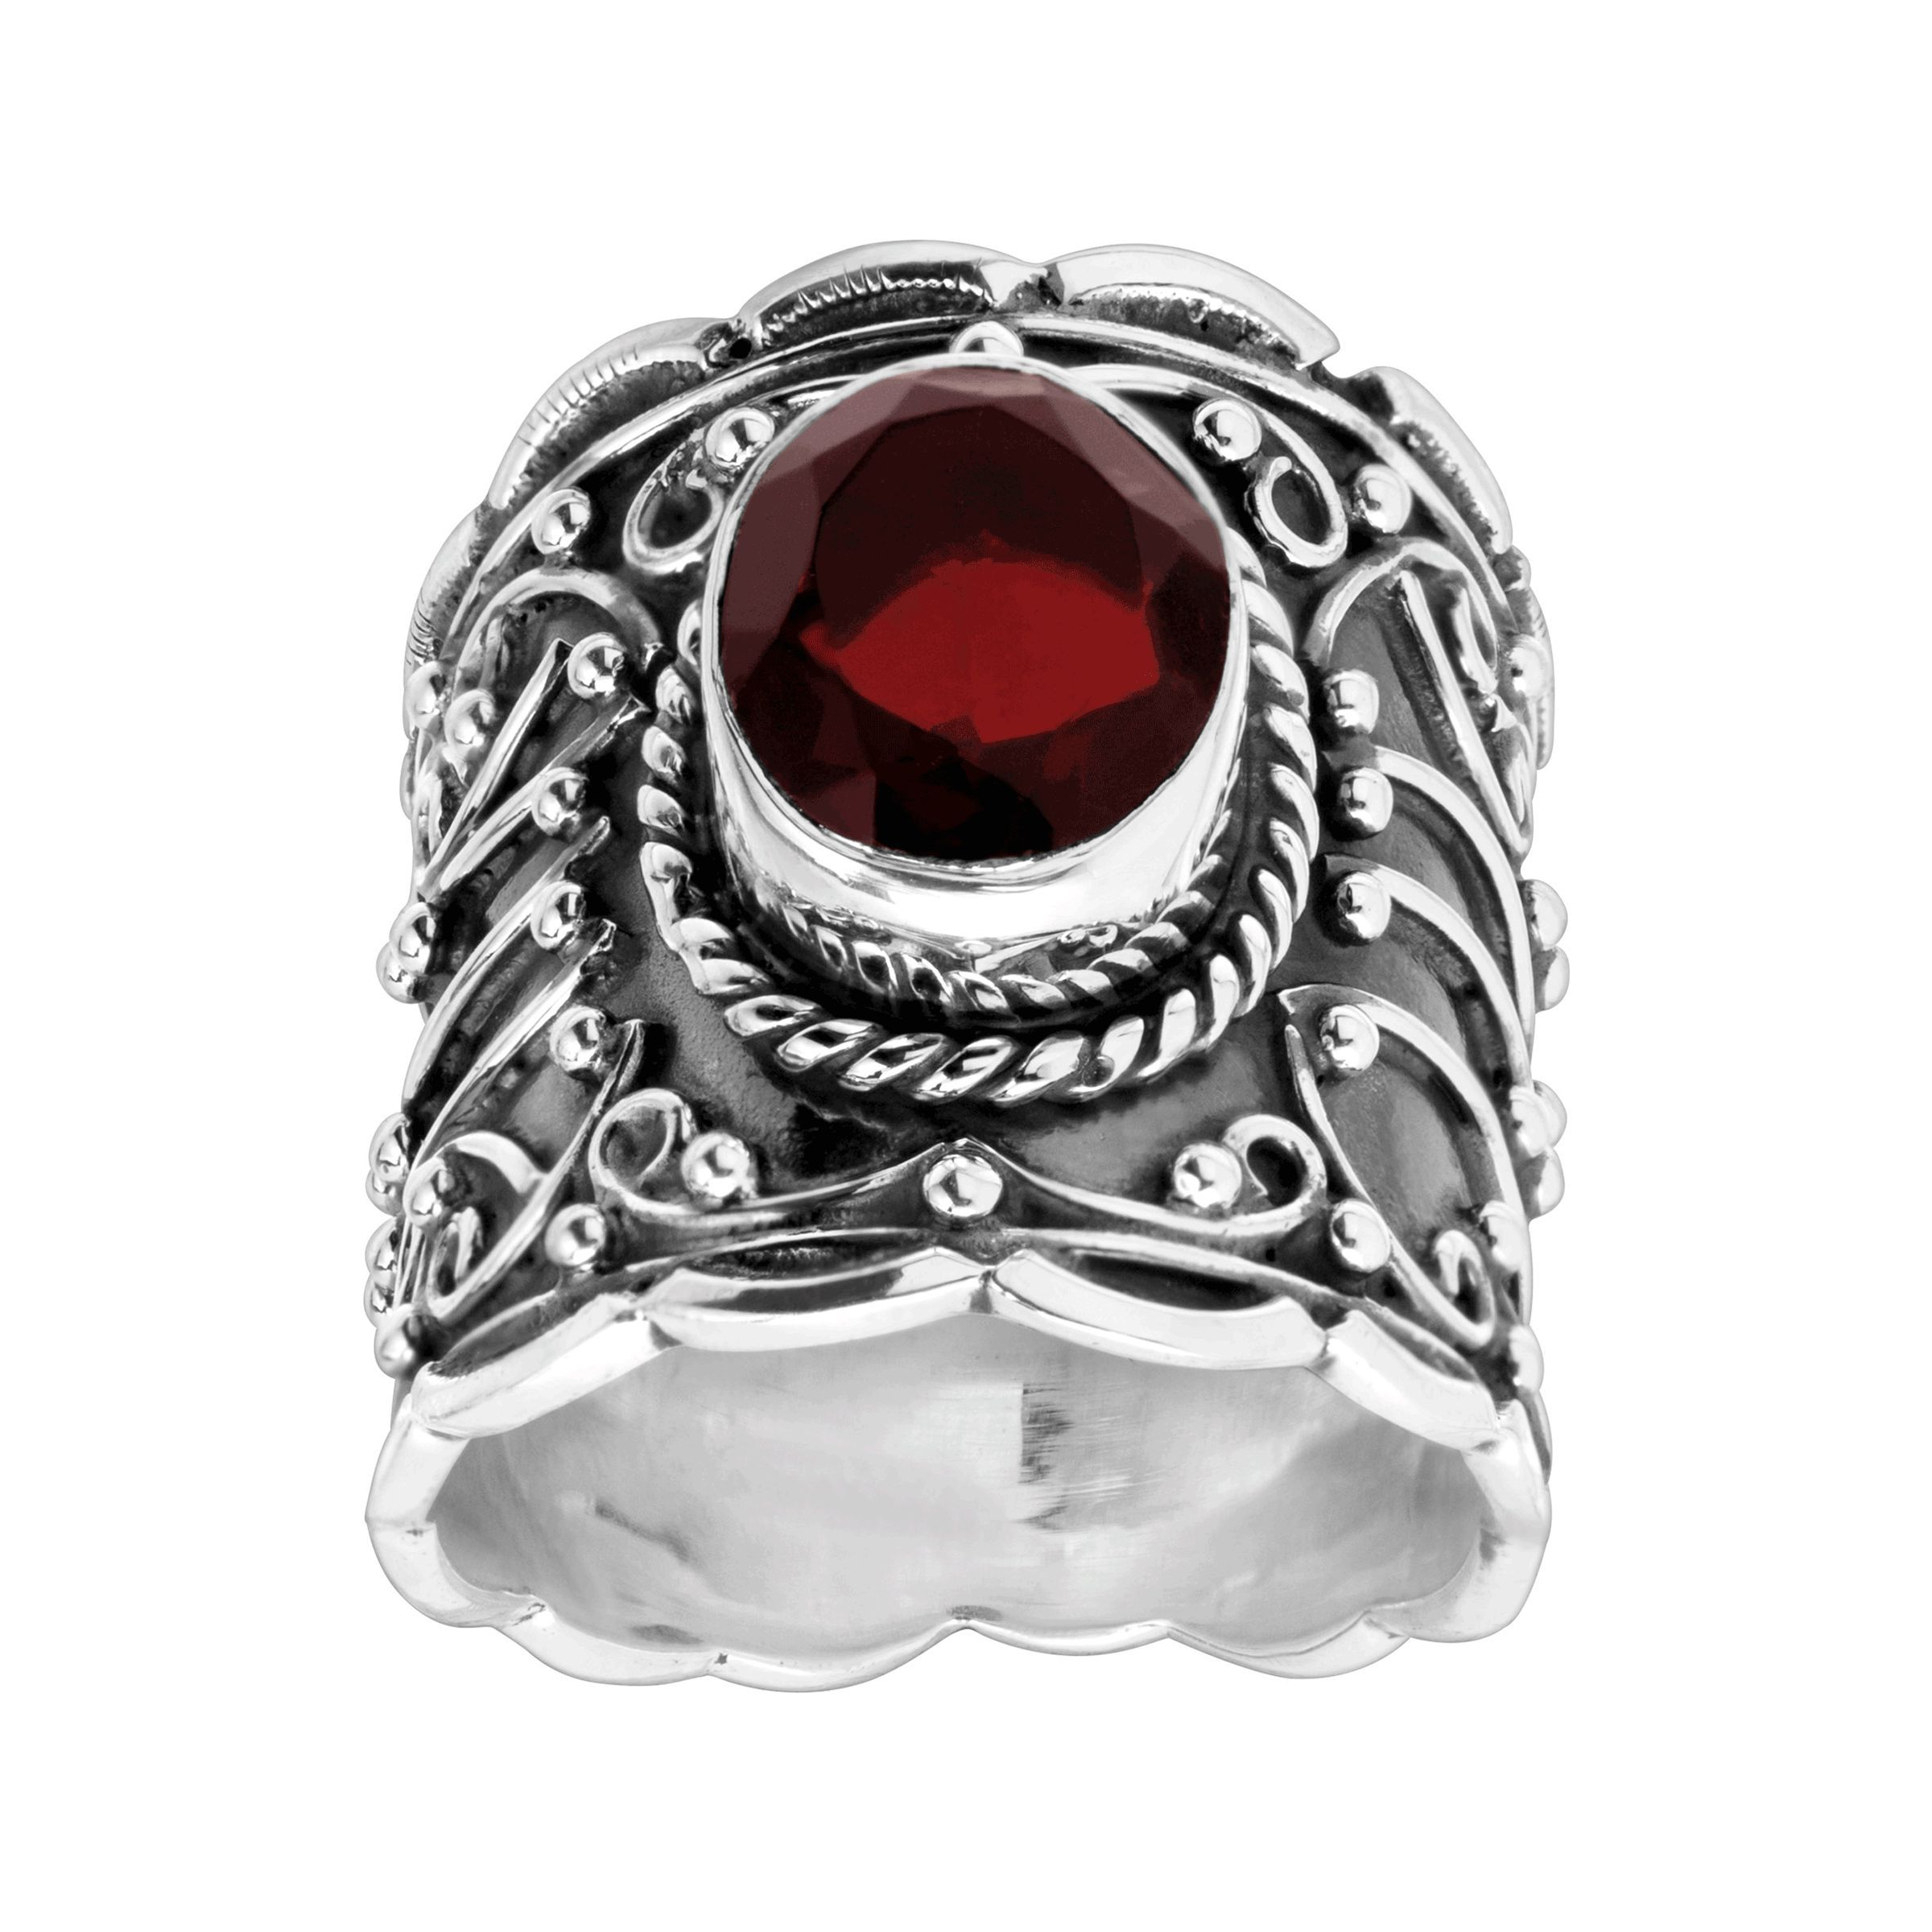 49c0acddb Silpada 'Pome-garnet' 5 ct Natural Garnet Ring in Sterling Silver ...